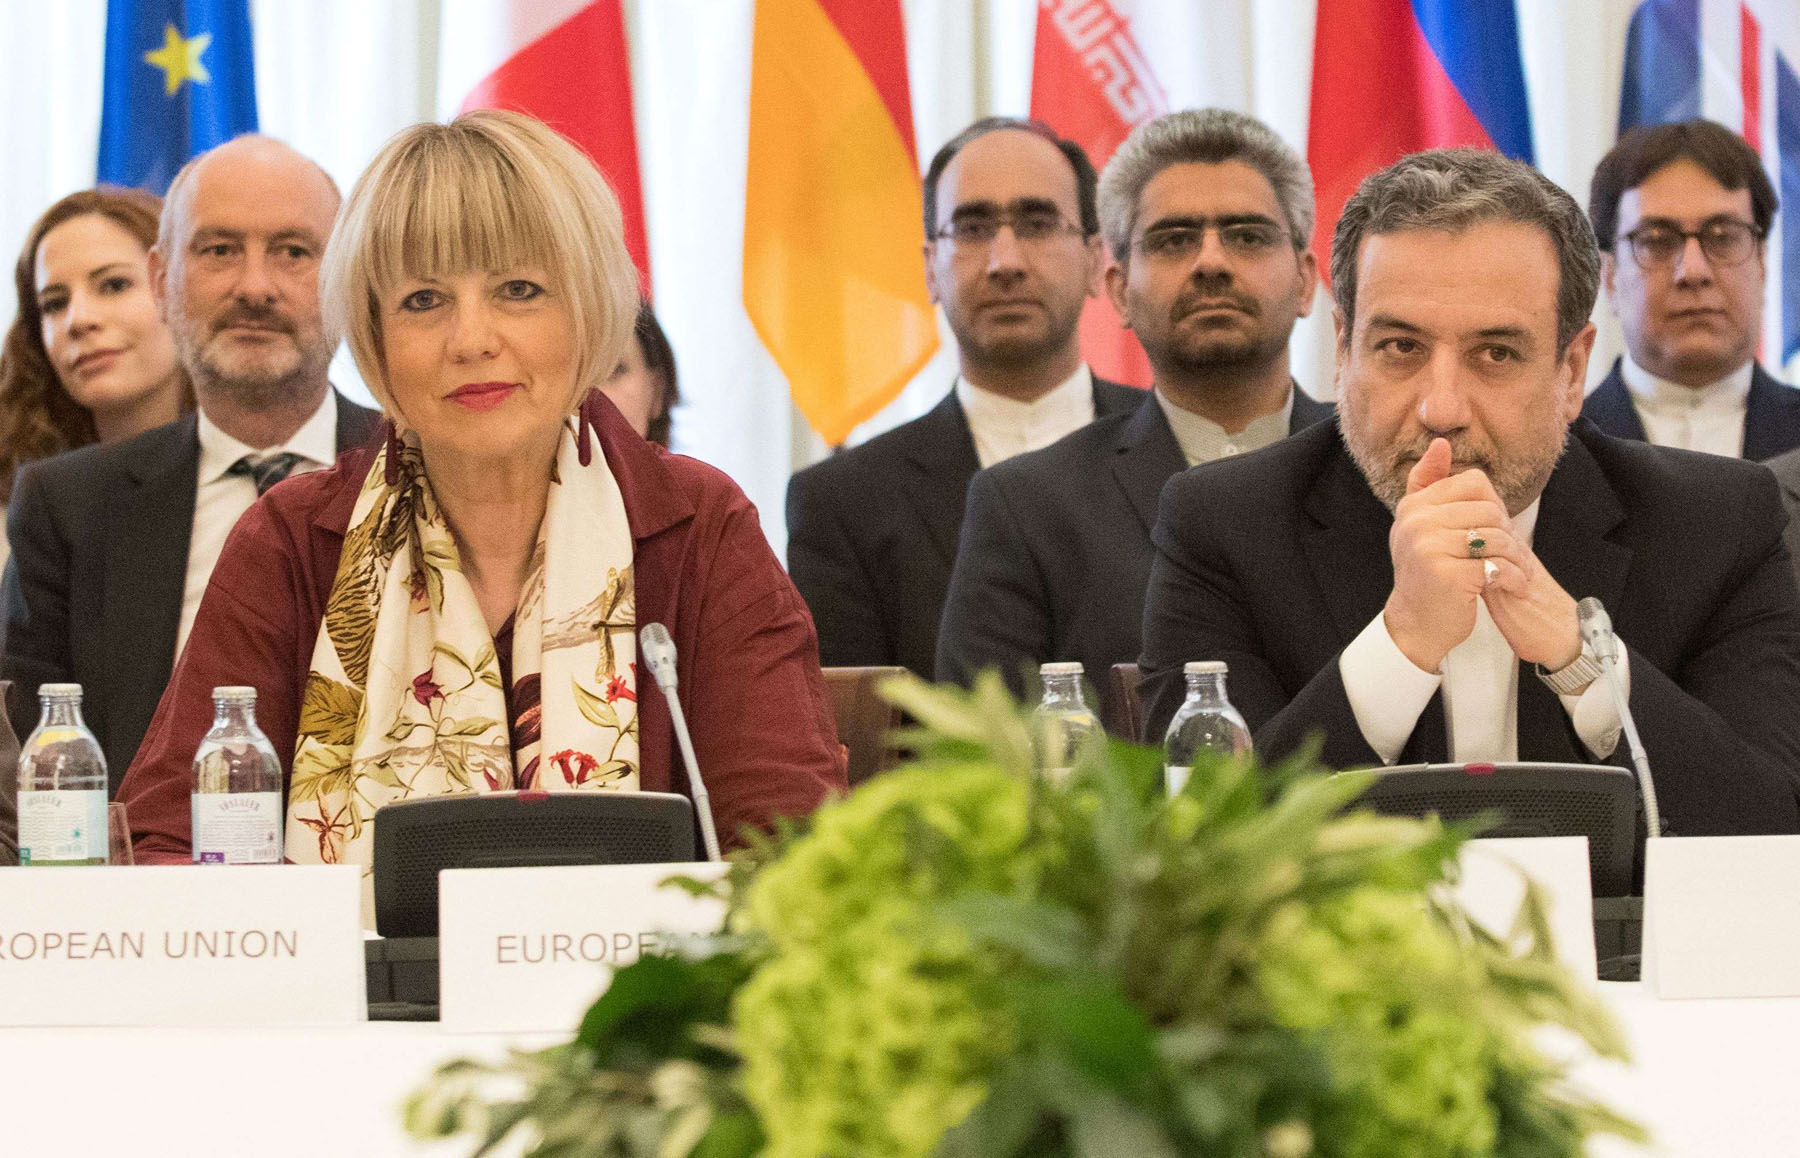 Iran's Deputy Foreign Minister Abbas Araghchi (R) and Secretary-General of the European Union's External Action Service Helga Schmid (L) take part in a meeting in Vienna, June 28. (AFP)